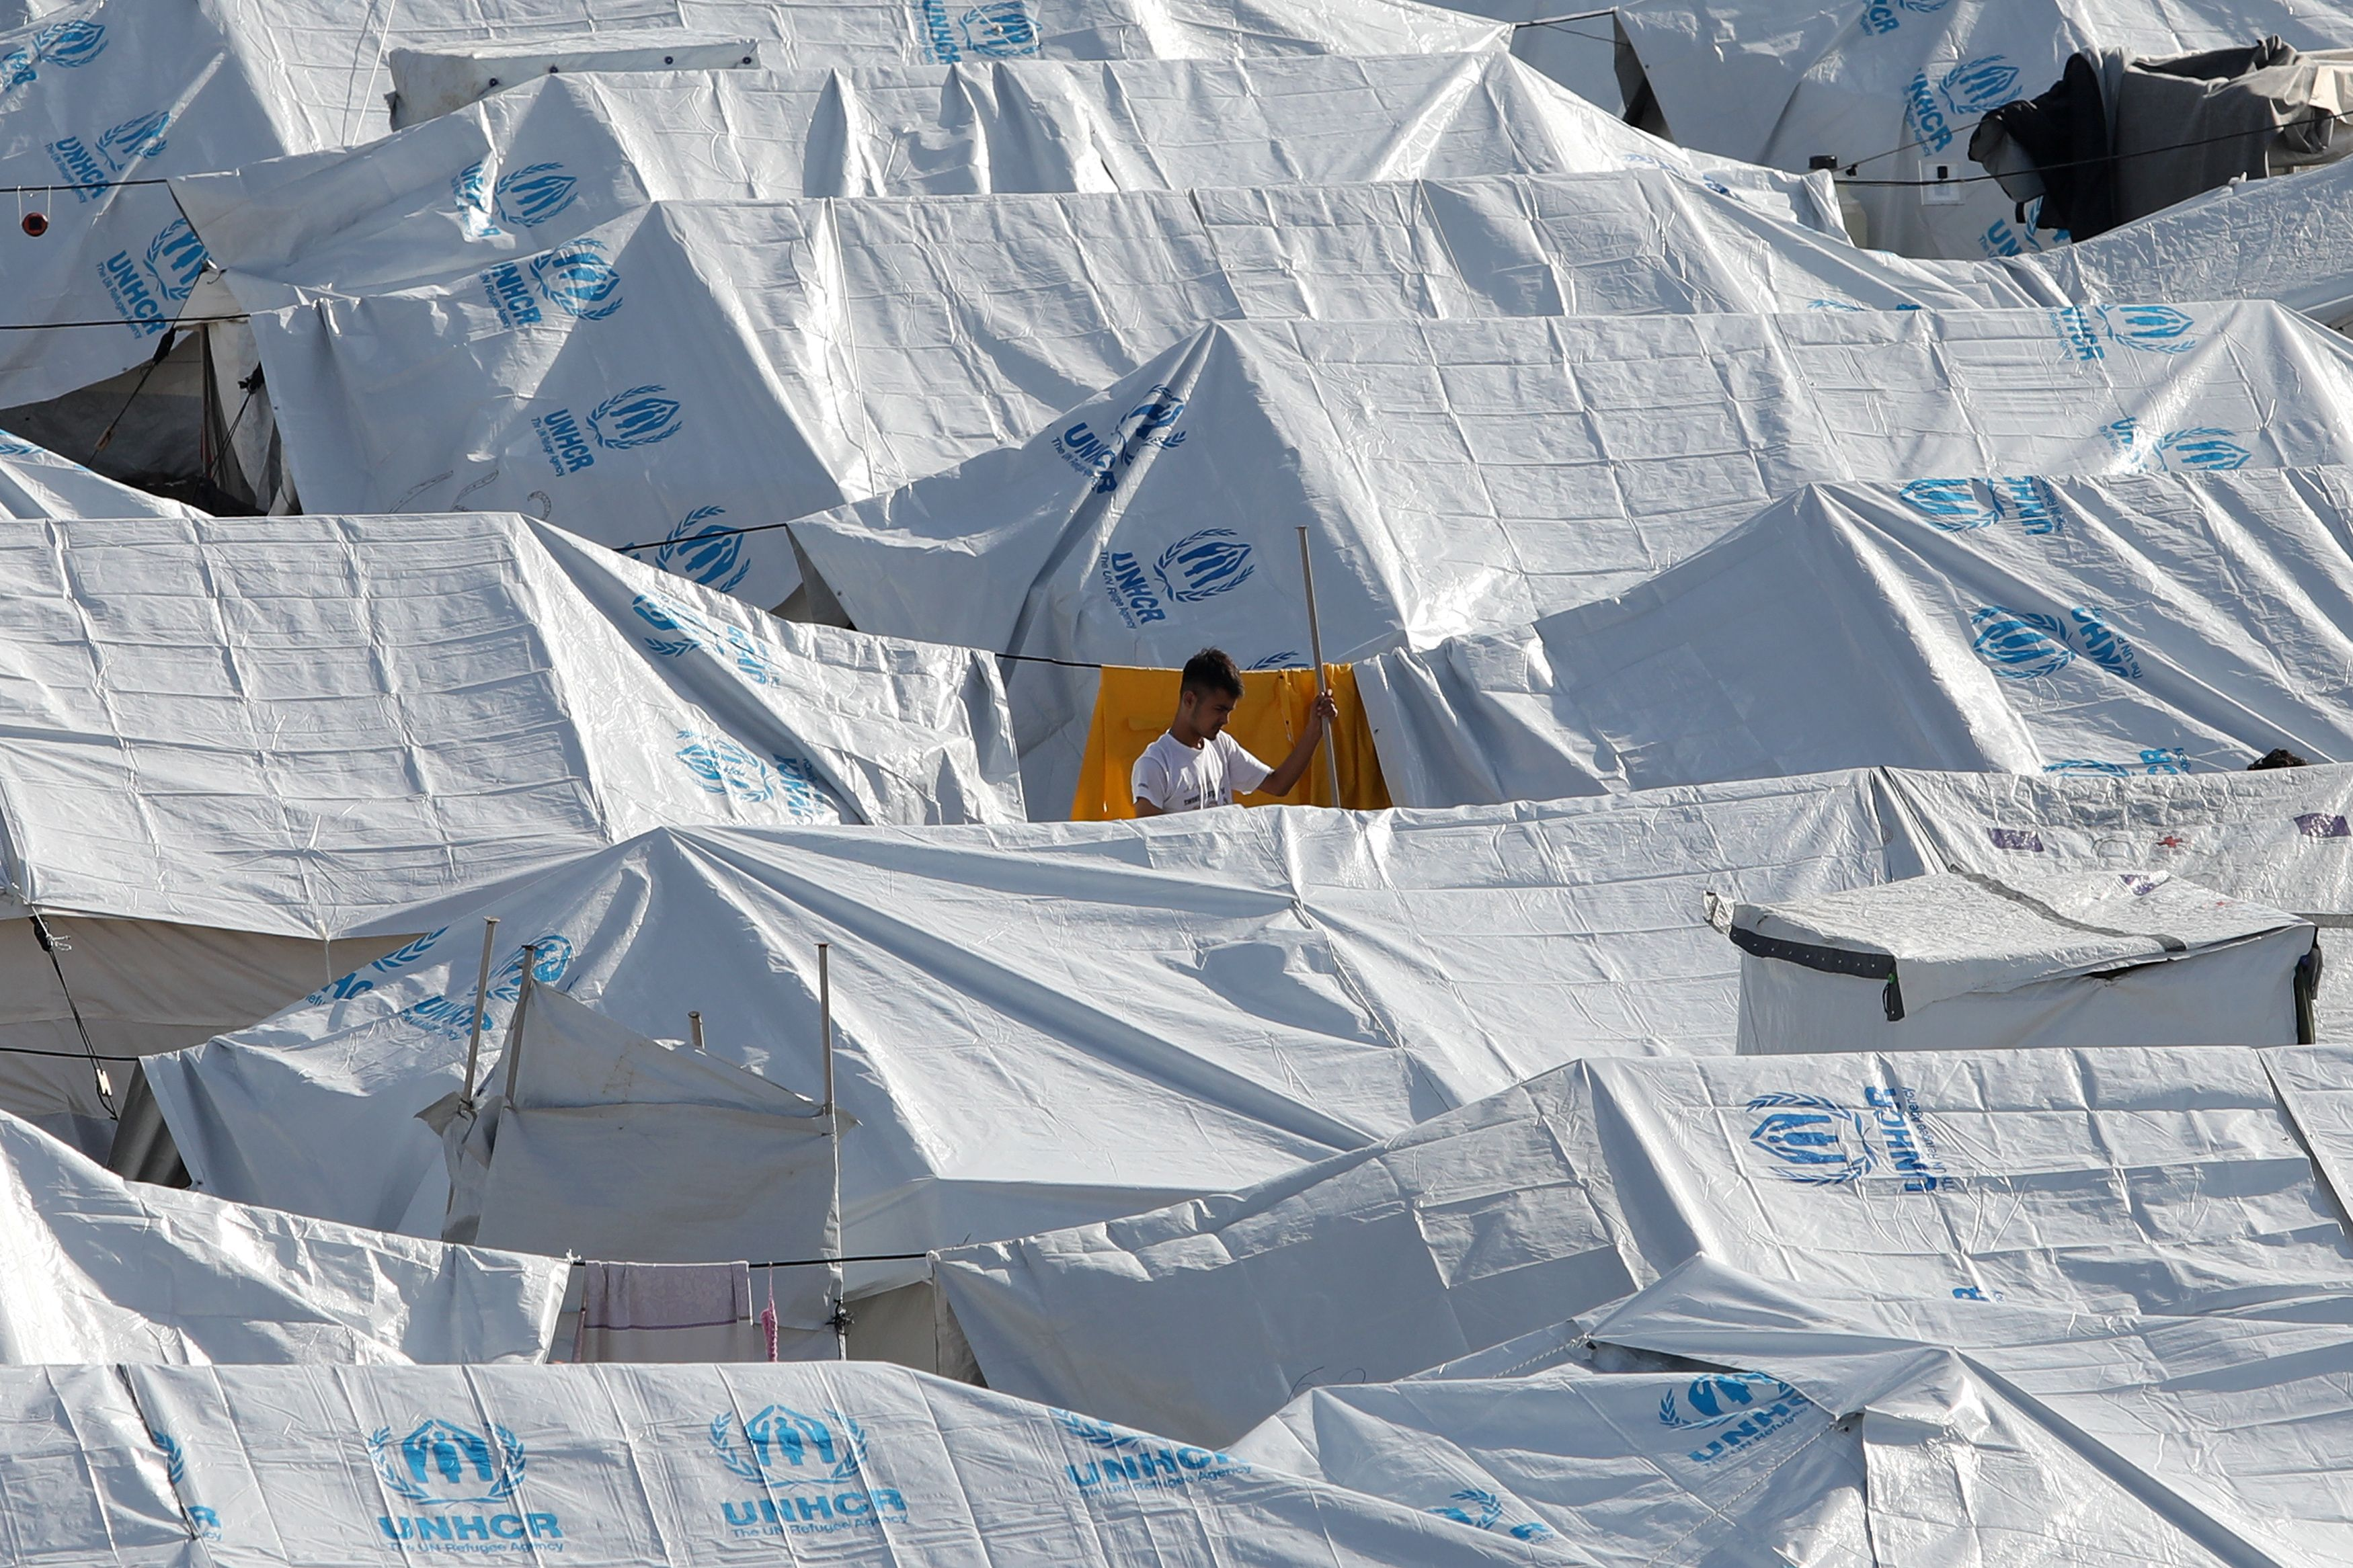 A young man stands among tents in the Kara Tepe camp for refugees and migrants on the island of Lesbos, Greece, October 14, 2020. REUTERS/Elias Marcou